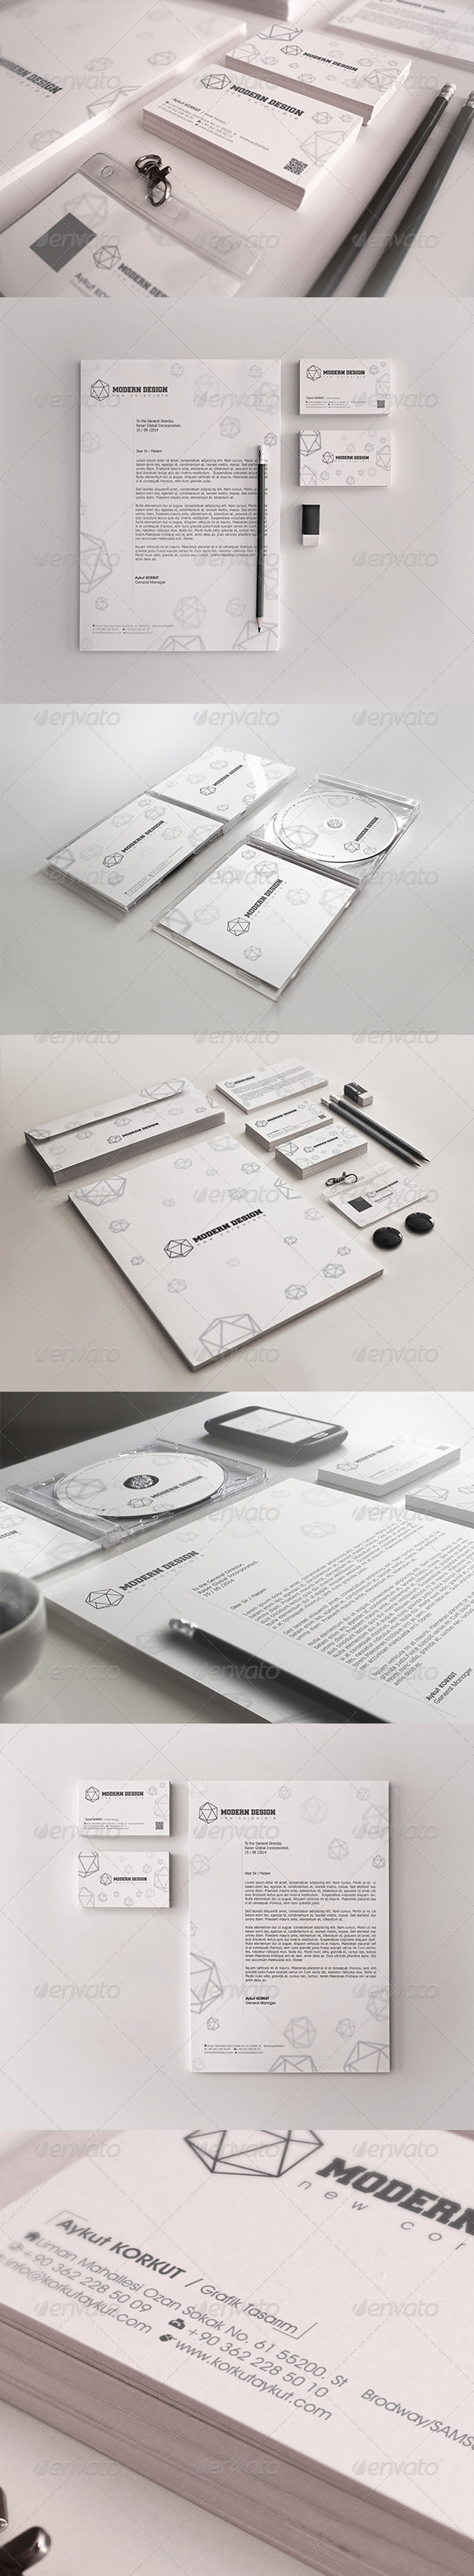 GraphicRiver Modern Design Corporate Identity Package 7900122